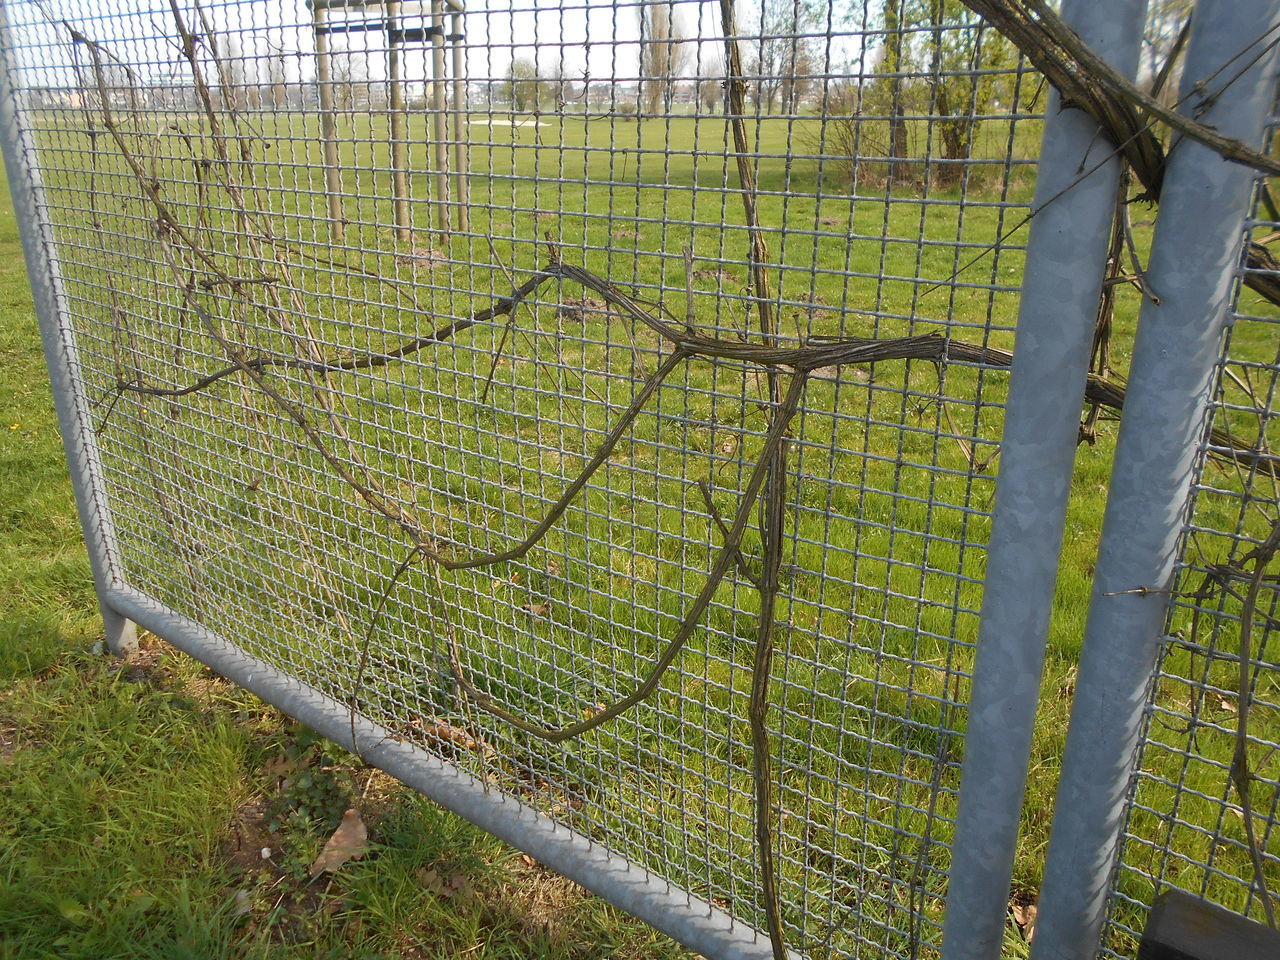 Beauty In Nature Day Fence Growth Nature Netting No People Outdoors Tranquility Tree